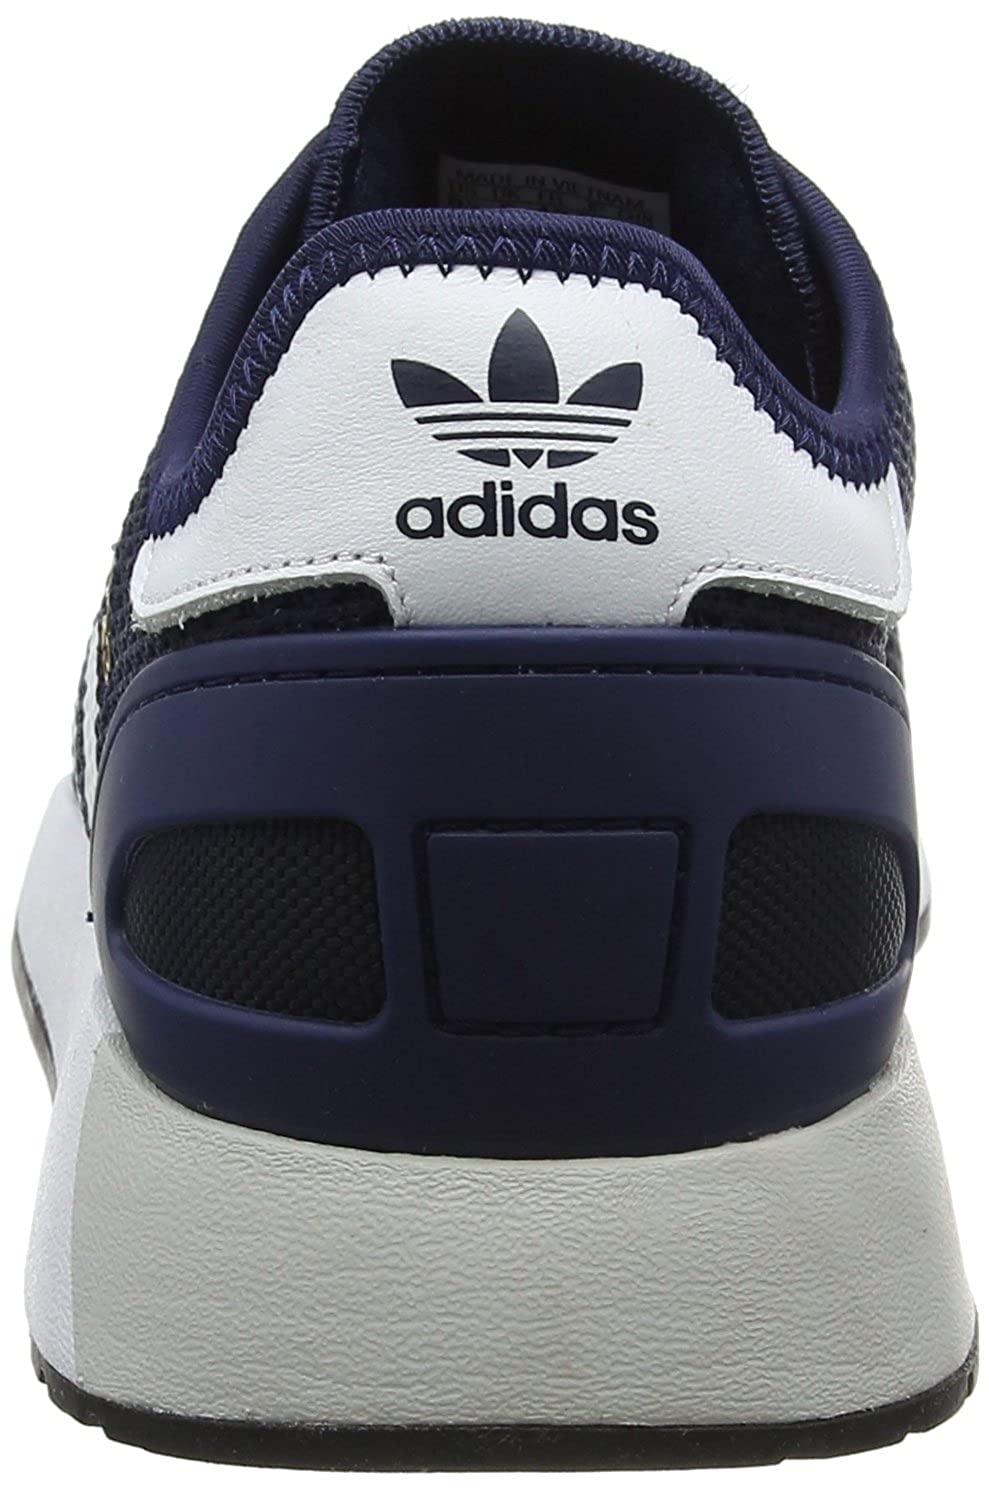 6e6ce4ed24324 Amazon.com | adidas Originals Iniki Runner CLS Shoes | Fashion Sneakers